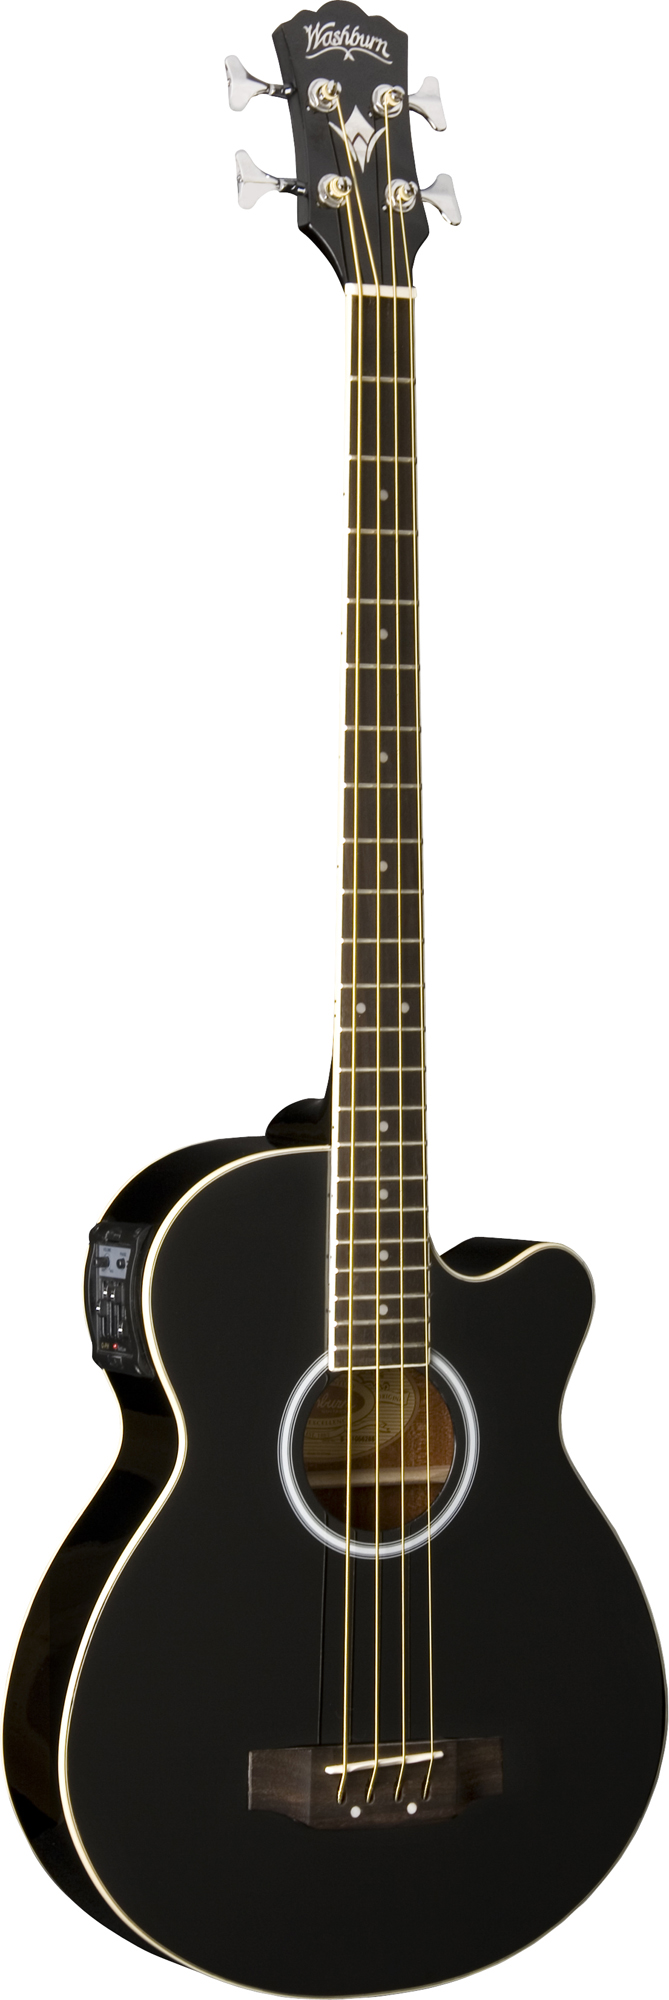 washburn ab5bk acoustic electric bass guitar with case included and black finish was12 ab5bk. Black Bedroom Furniture Sets. Home Design Ideas